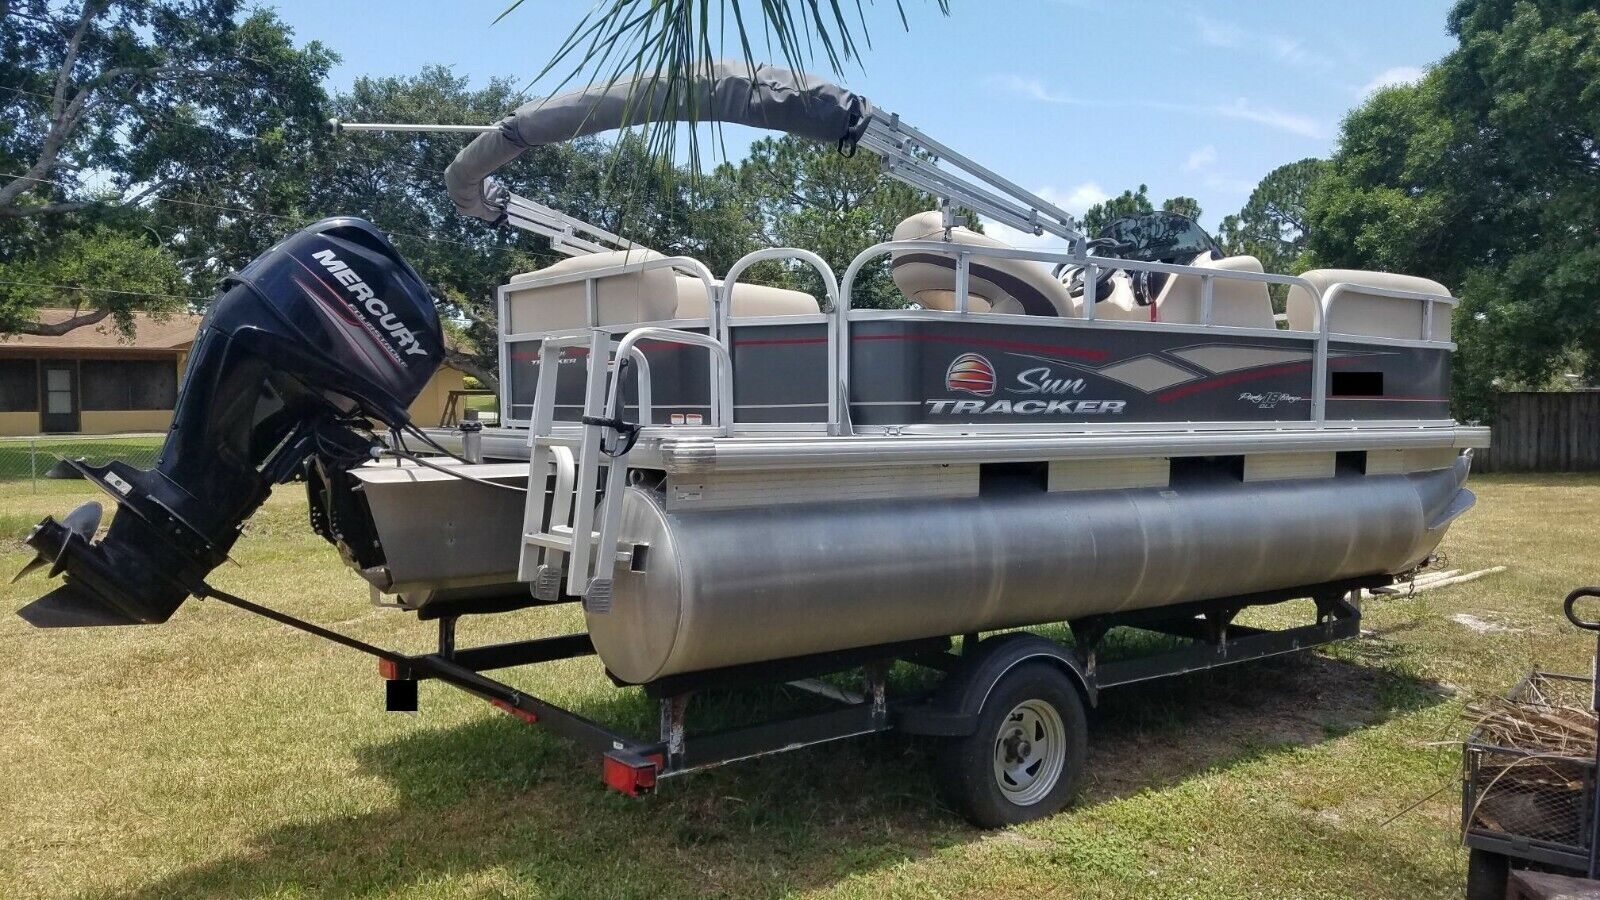 """2018 Suntracker Party Barge Pontoon Boat with Trailer 18"""" Foot Ft"""